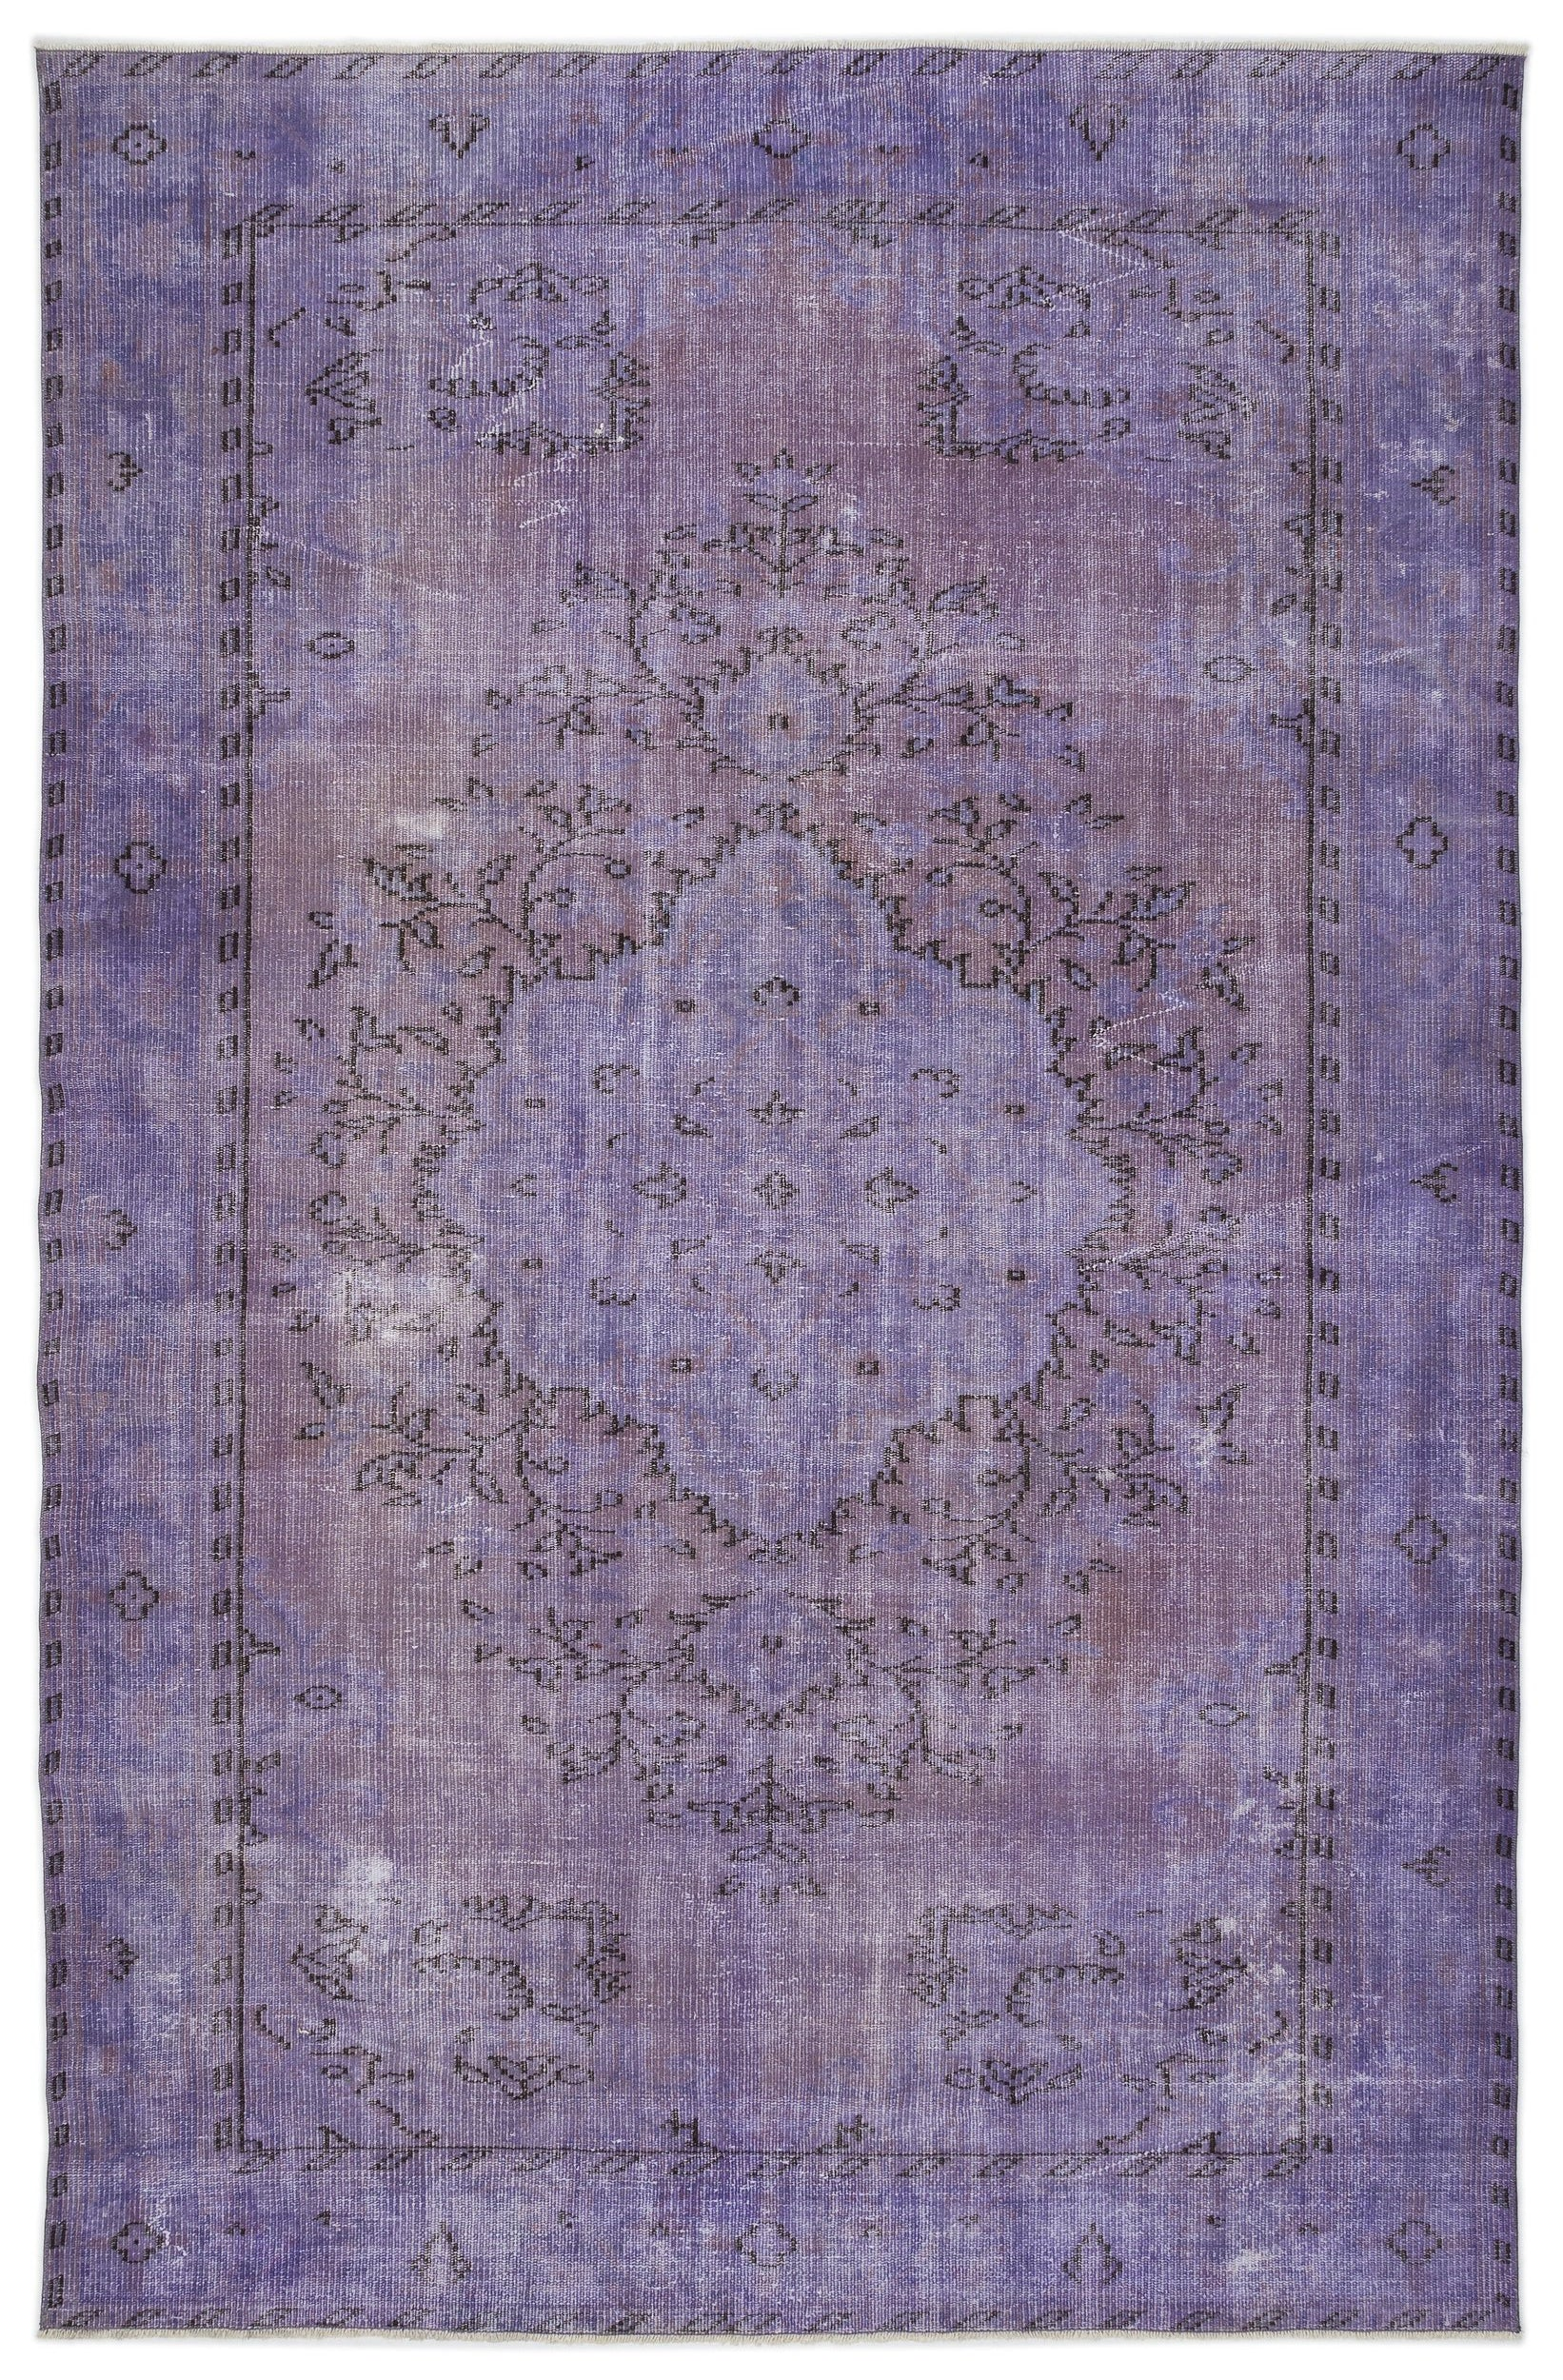 Purple Over Dyed Vintage Rug 6'4'' x 9'9'' ft 192 x 297 cm